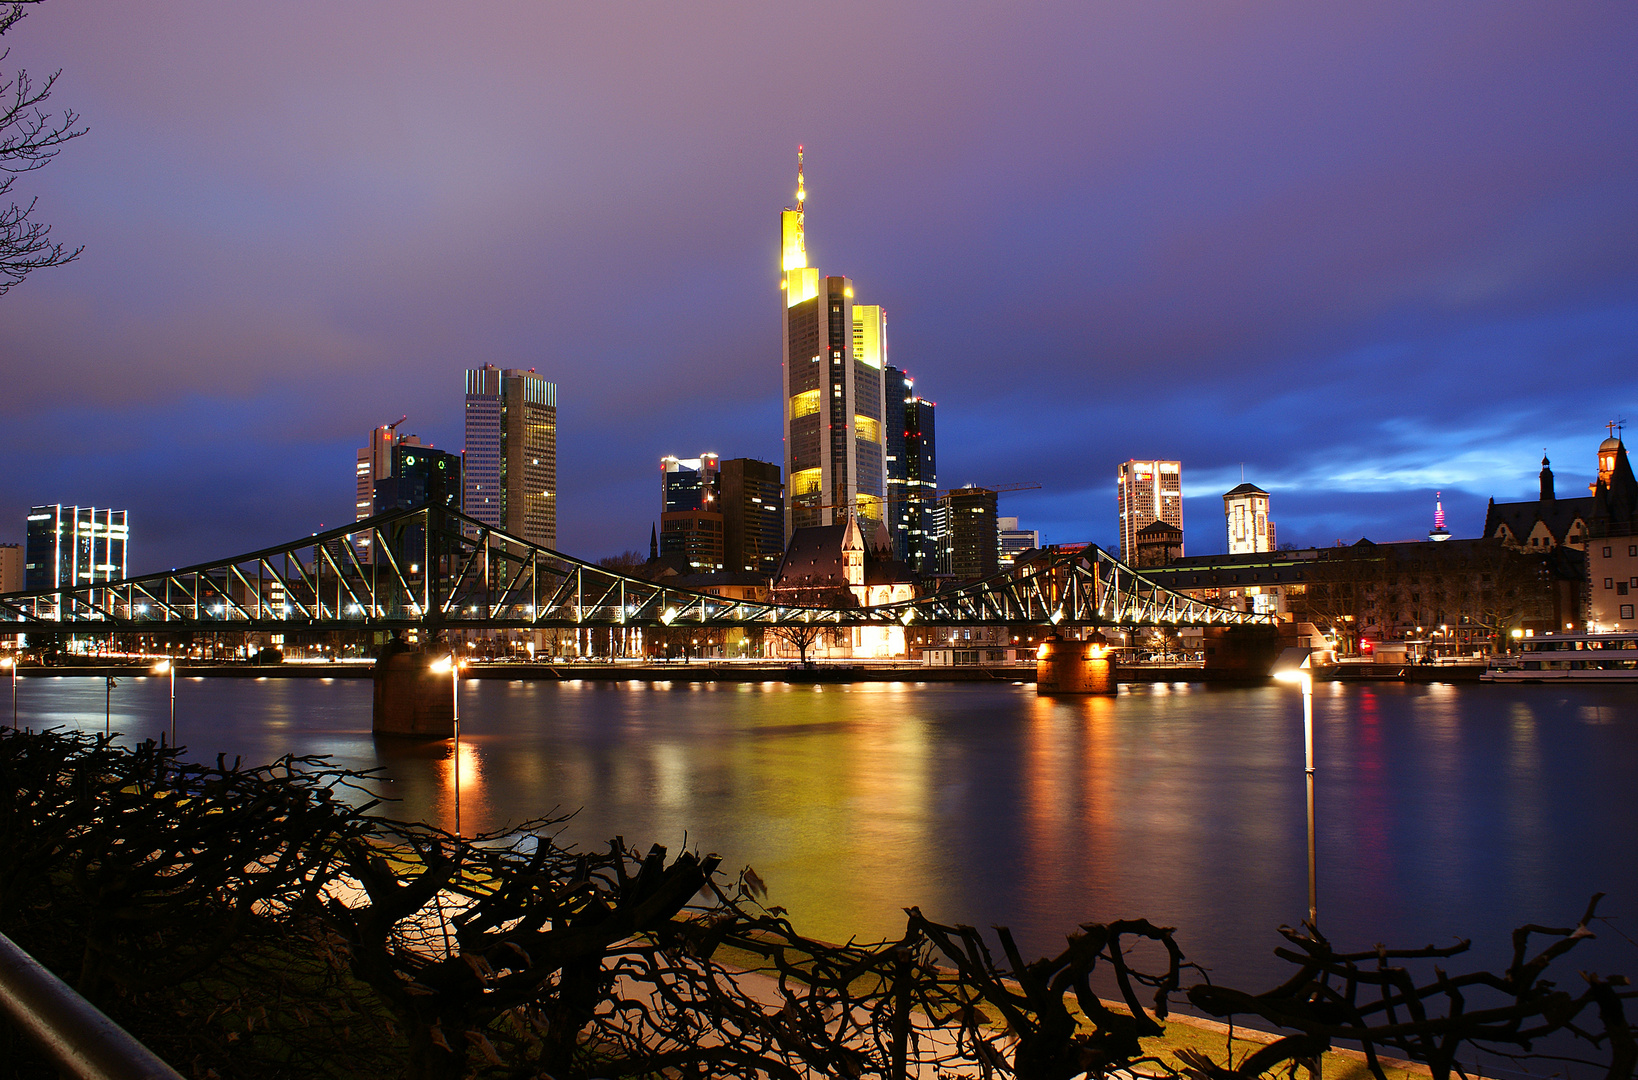 frankfurter skyline wallpaper foto bild deutschland europe hessen bilder auf fotocommunity. Black Bedroom Furniture Sets. Home Design Ideas